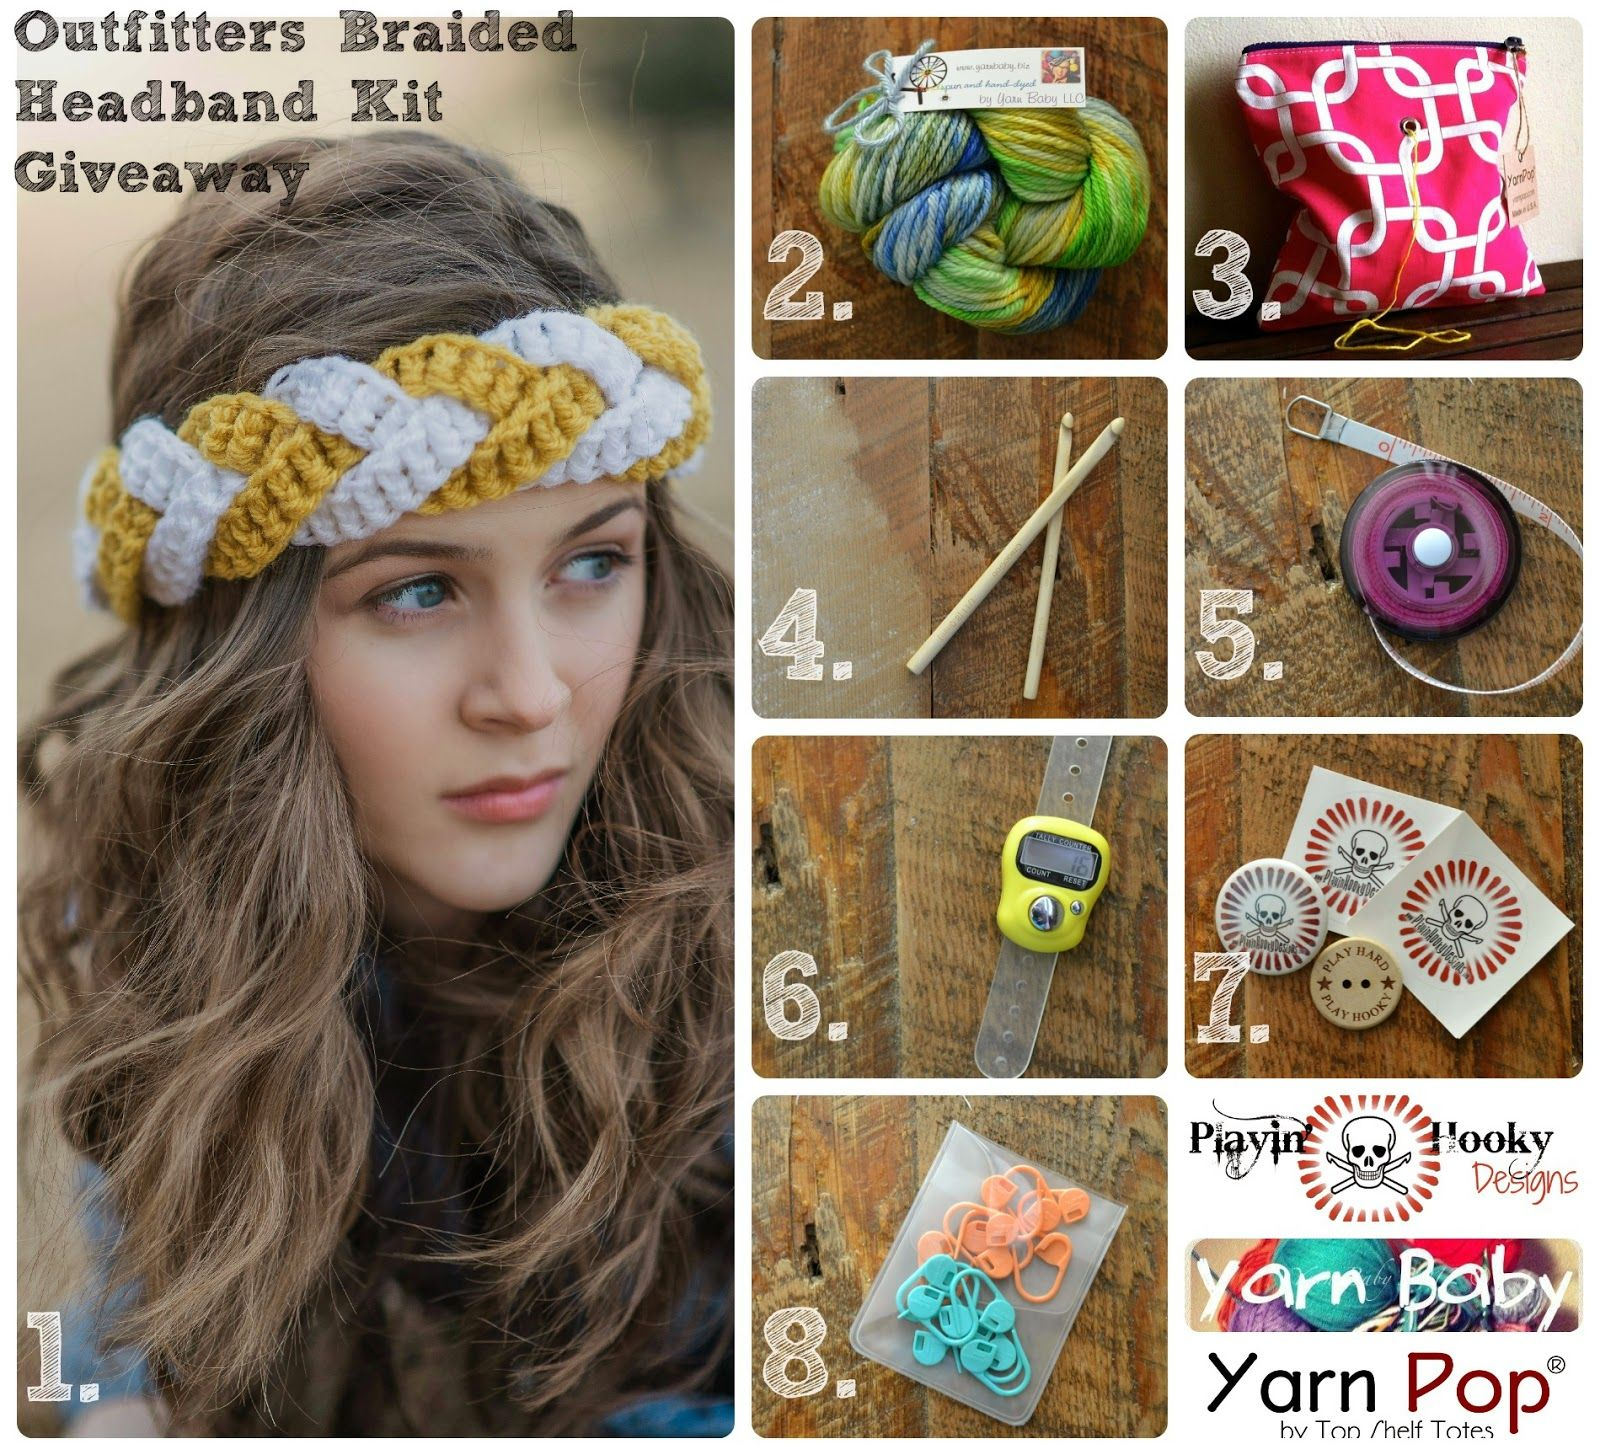 A chance to win some amazing things. Check it out if you crochet ...